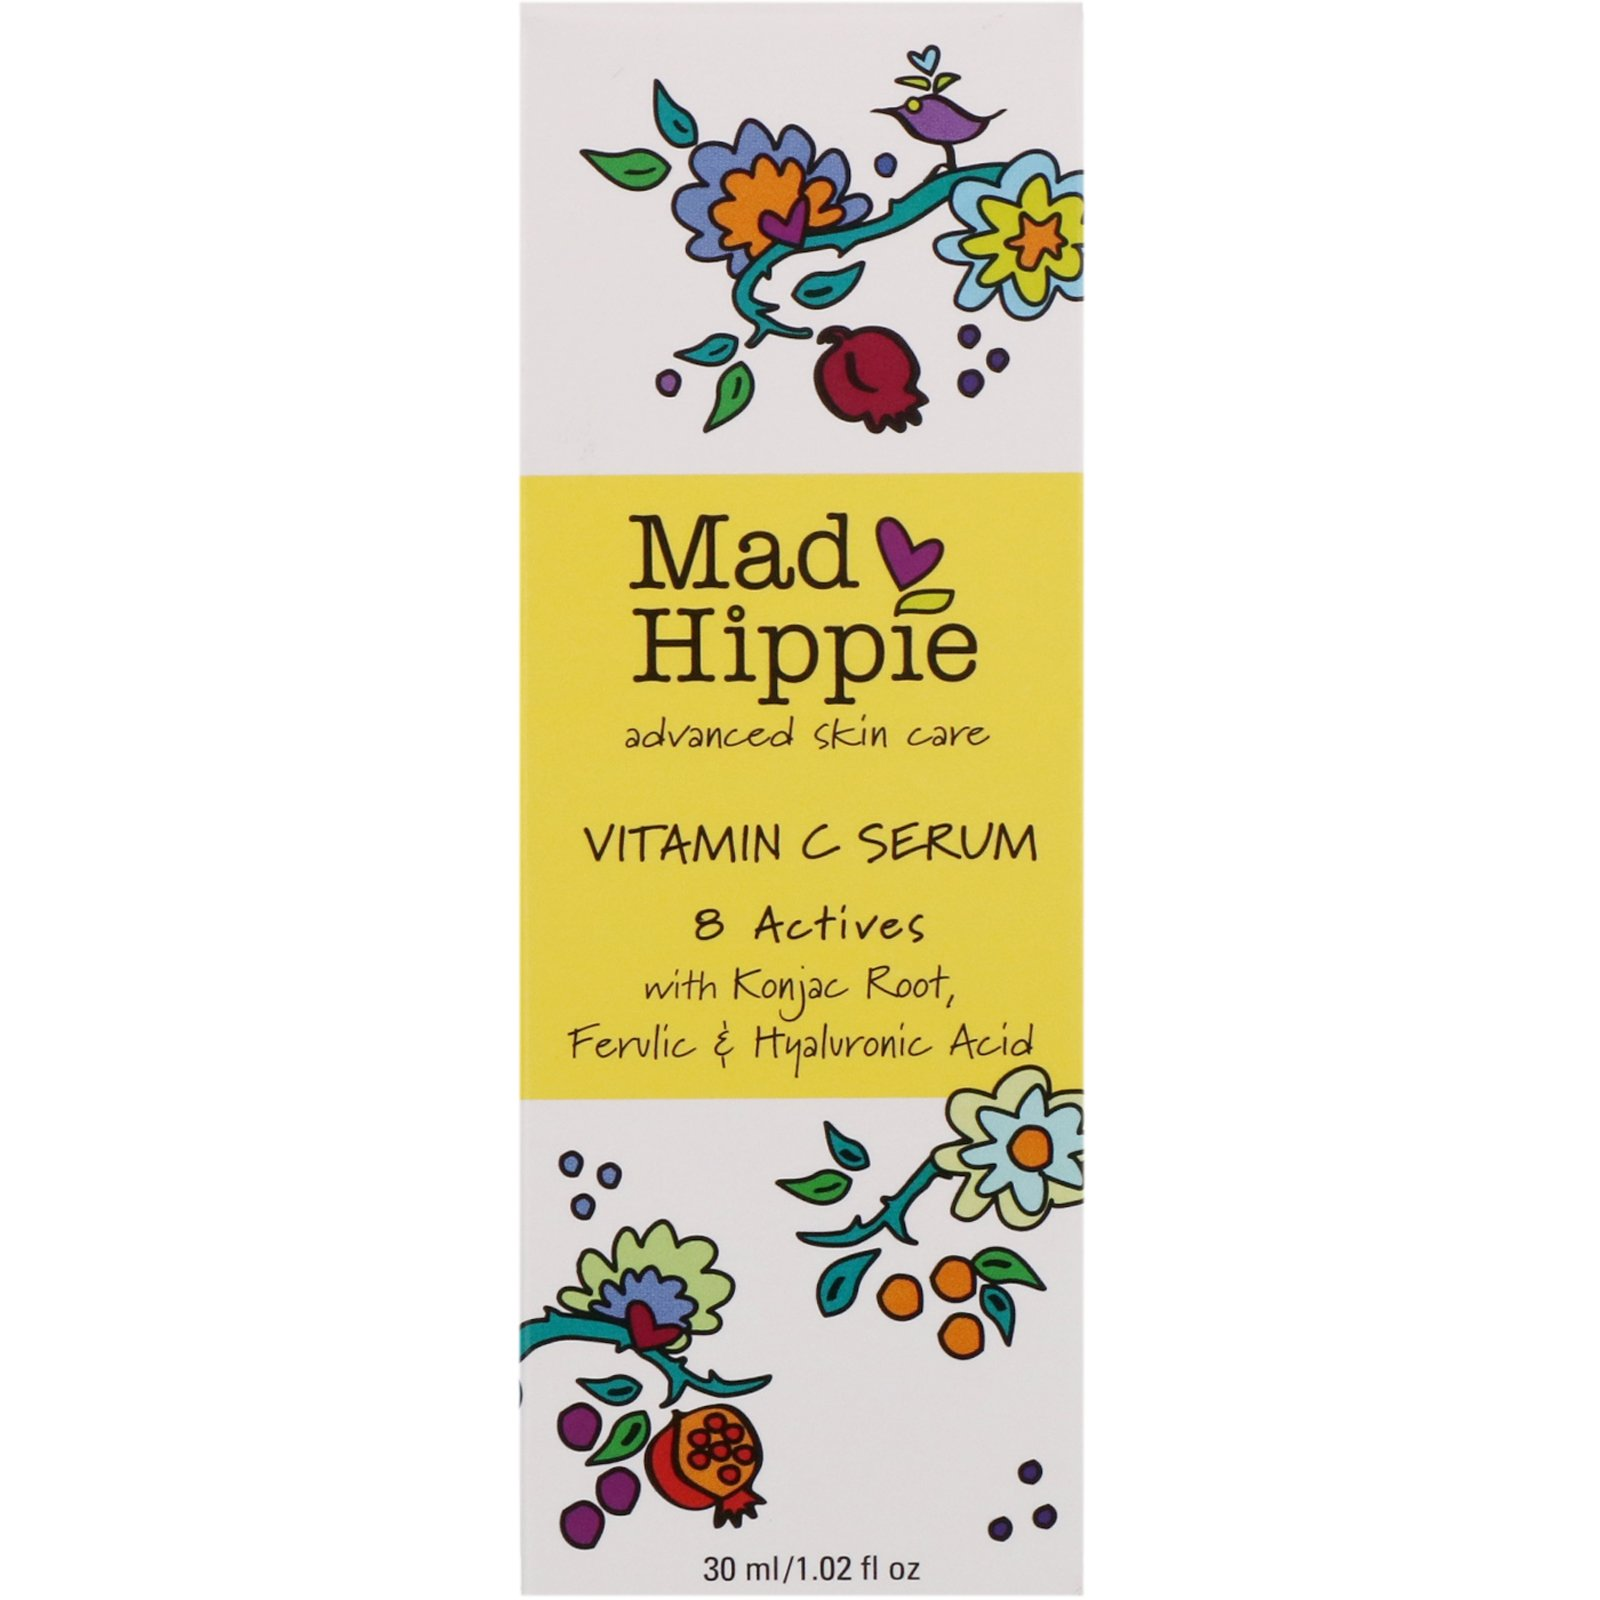 Mad Hippie Skin Care Products, Vitamin C Serum, 8 Actives, 1.02 fl oz (pack of 3) YADAH Bubble Deep Cleanser 150ml K-Beauty for Makeup Blackhead Sebum Removal